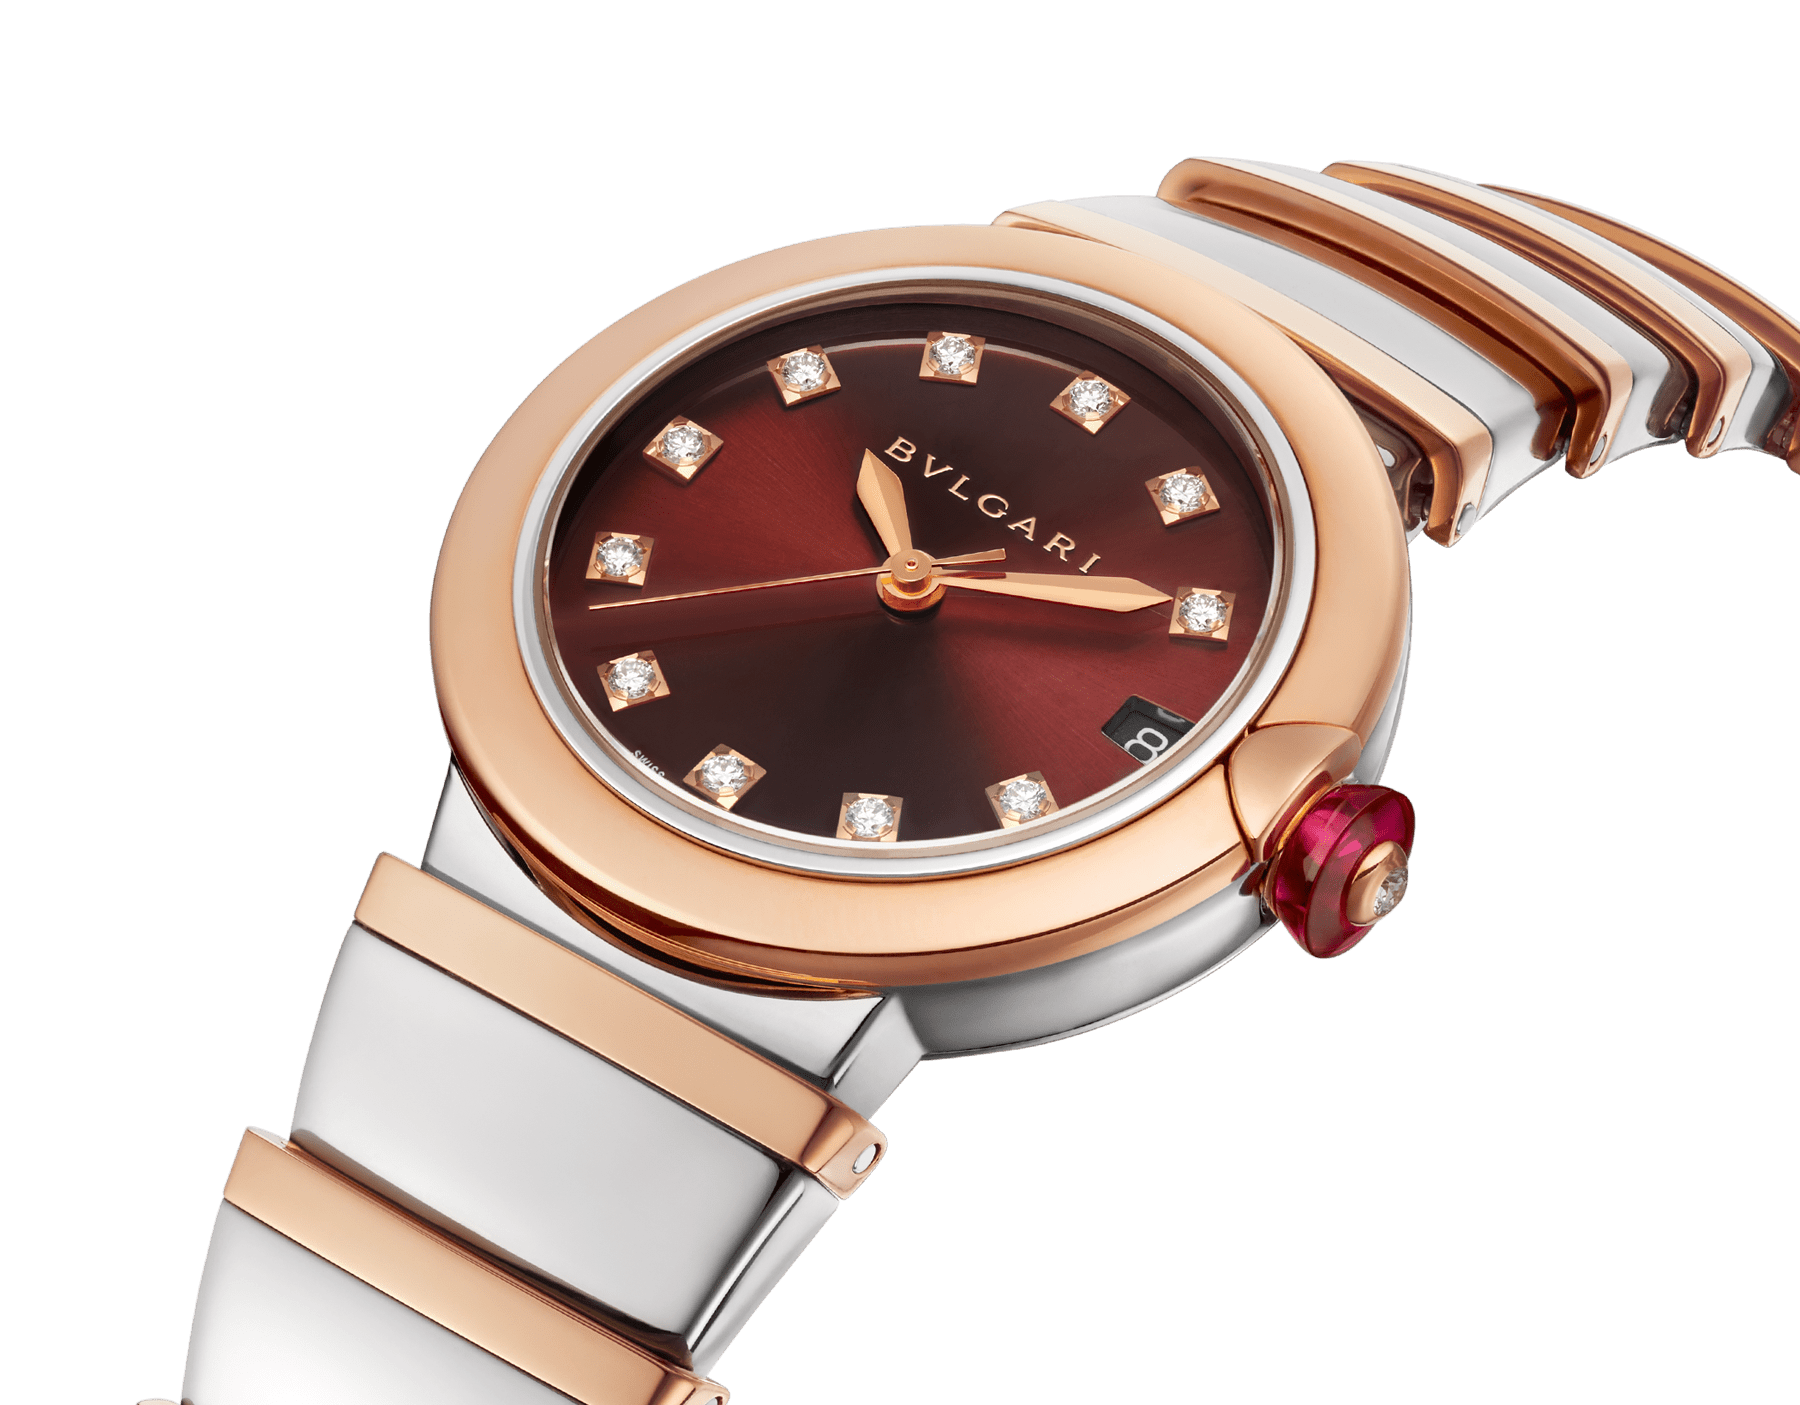 LVCEA watch in 18 kt rose gold and stainless steel case and bracelet, with brown dial and diamond indexes. 102689 image 2